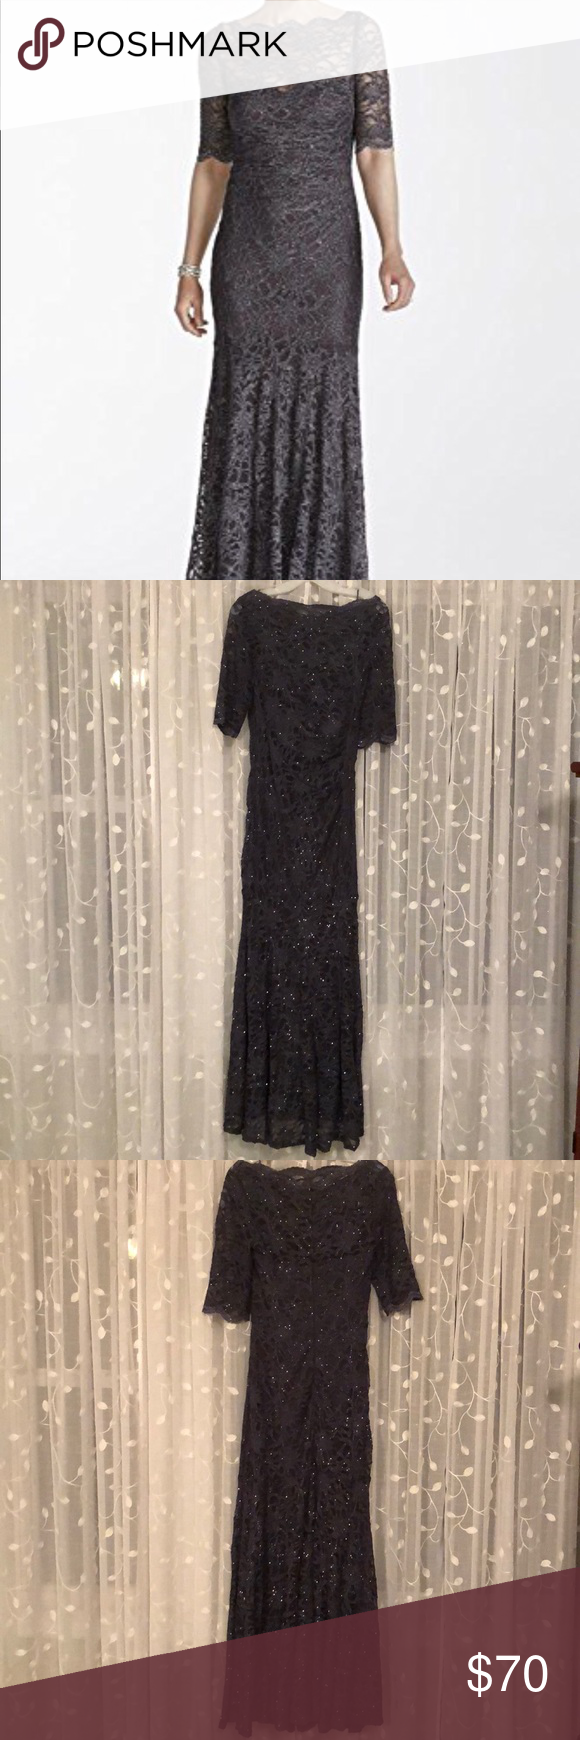 43f4d82278fe Charcoal gray Nightway glitter lace mermaid gown Size 14 Nightway stretch glitter  lace gown. Great